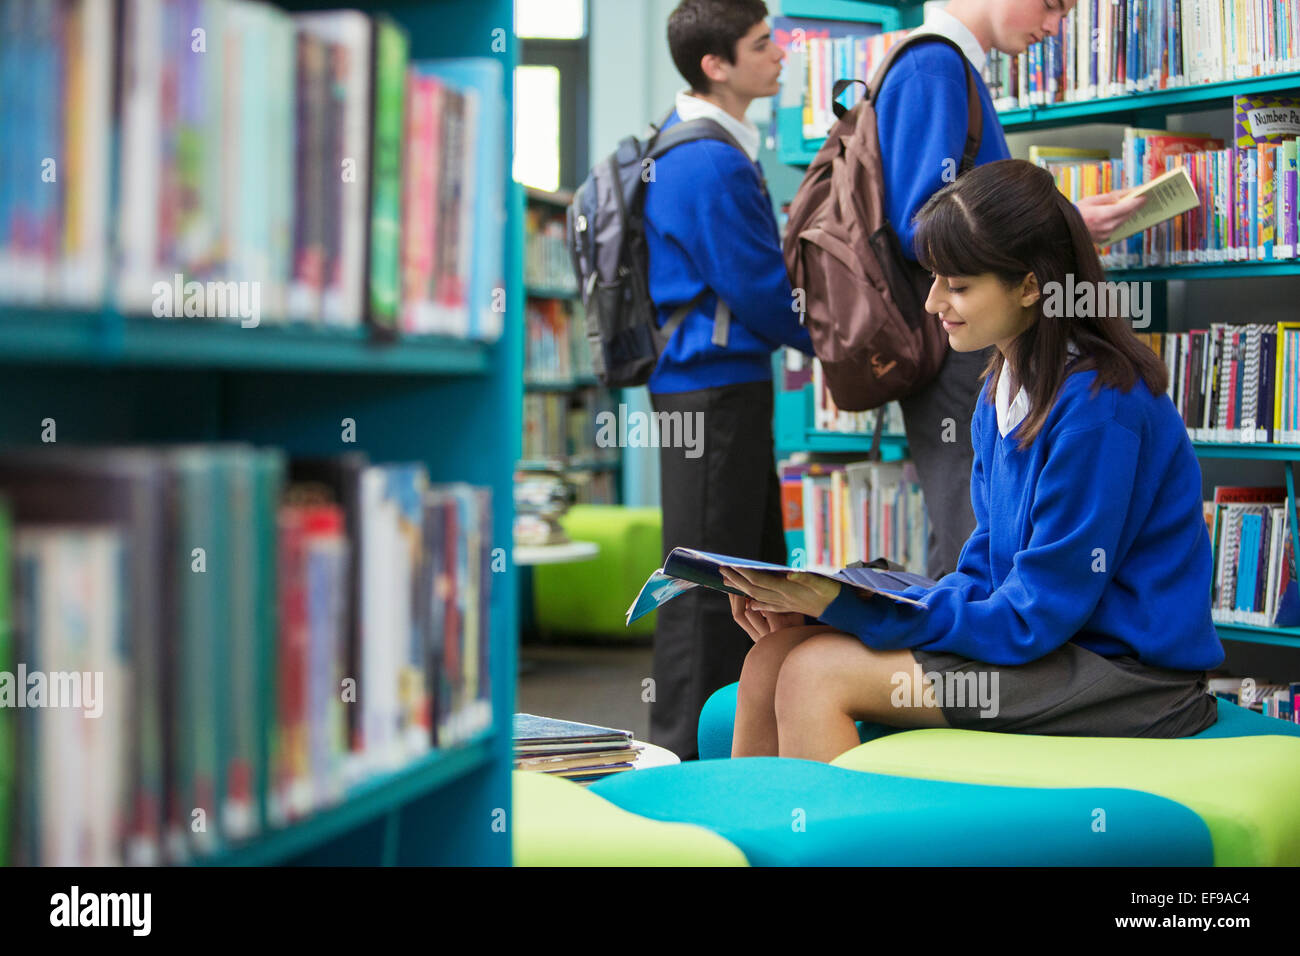 Students reading books in library - Stock Image